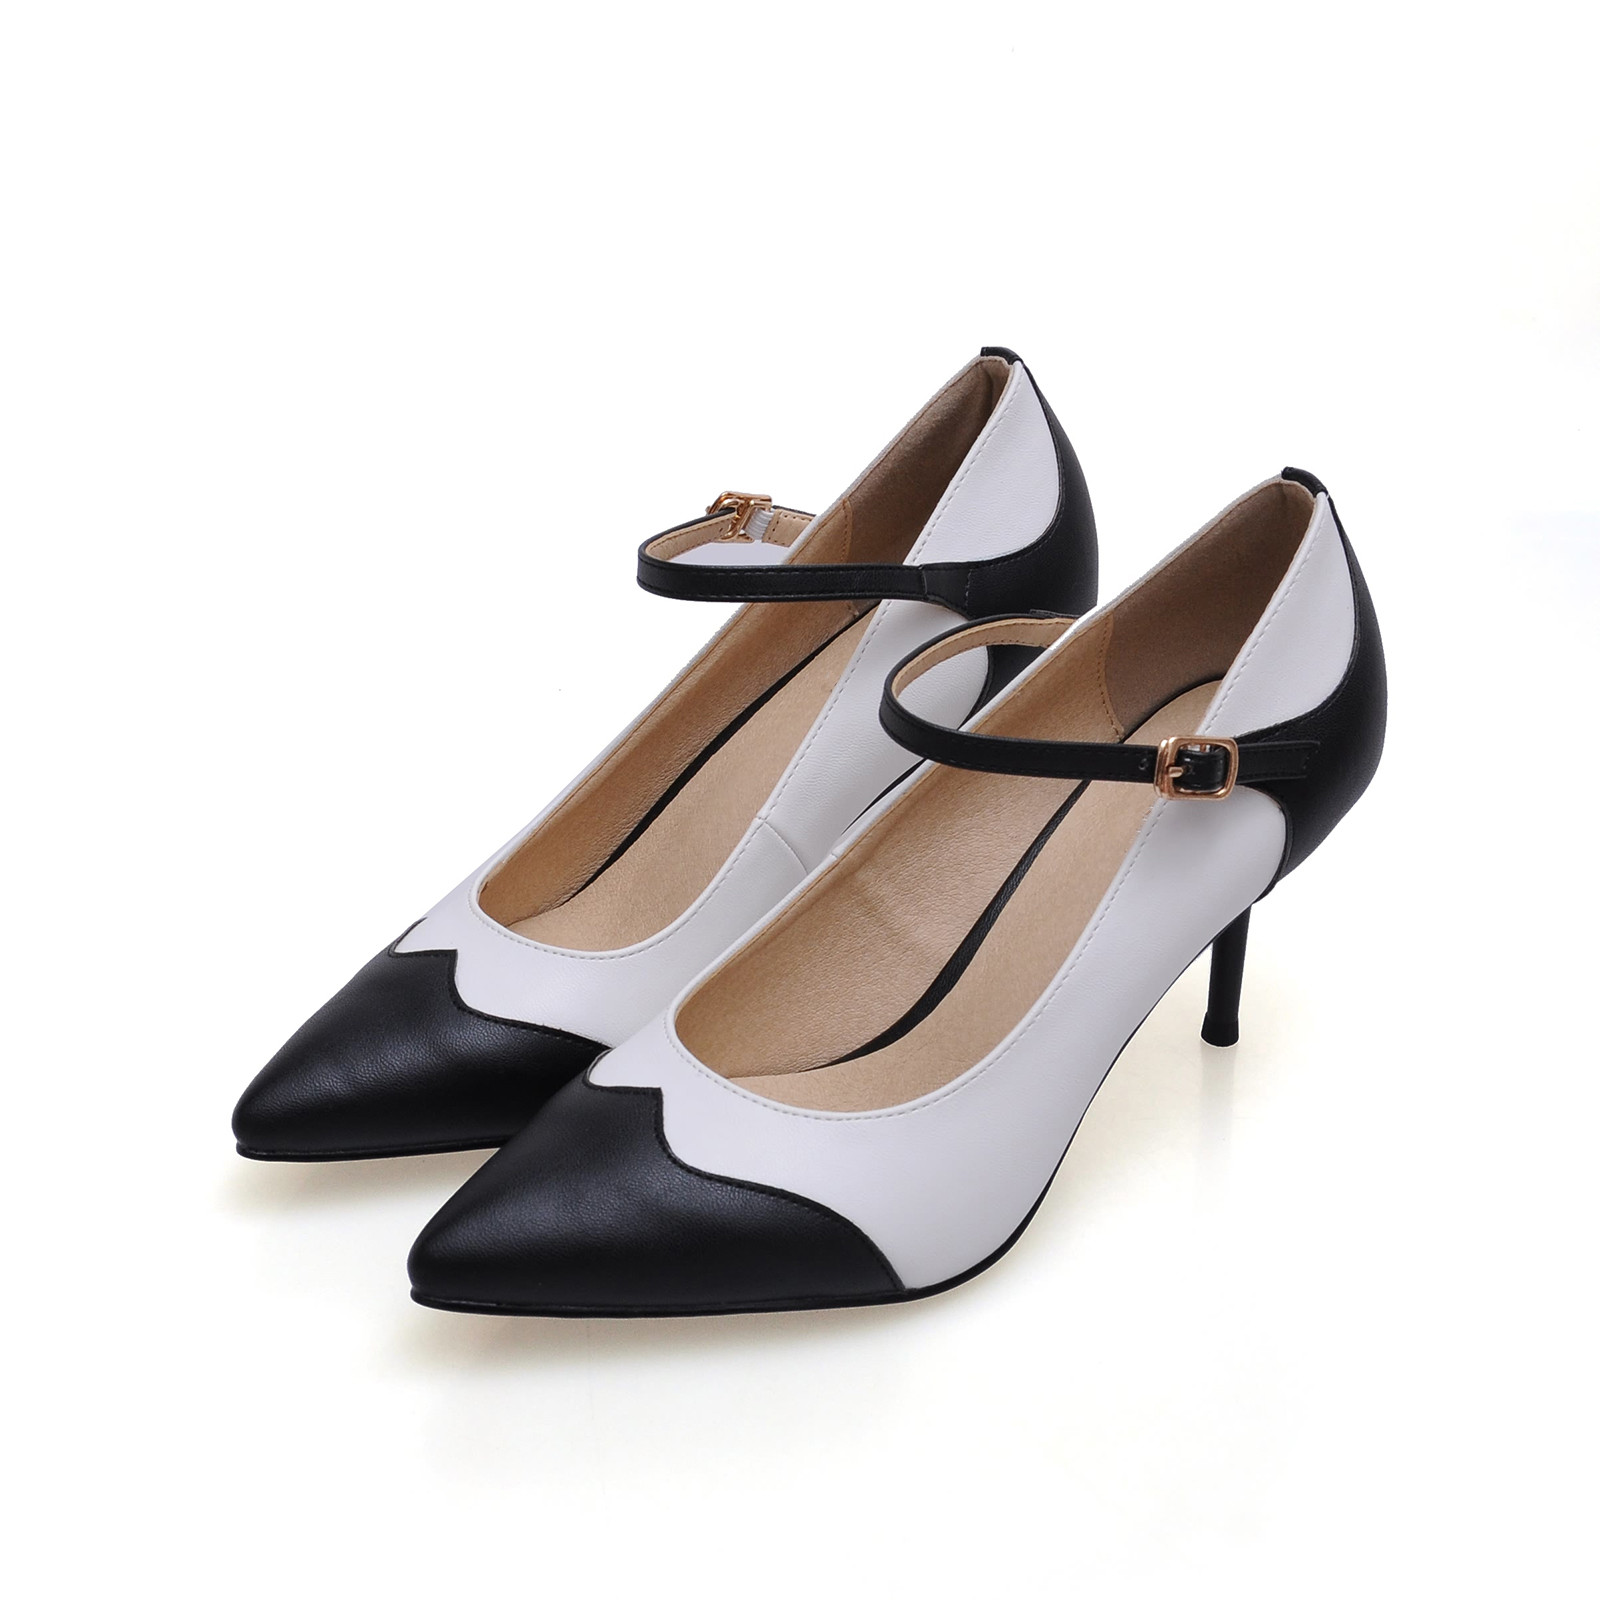 New Fashion Women Pointed Toe Pumps Shoes Big Size Sheepskin Genuine Leather Shoes Mixed Color High Heels Shoes SMYBK-86